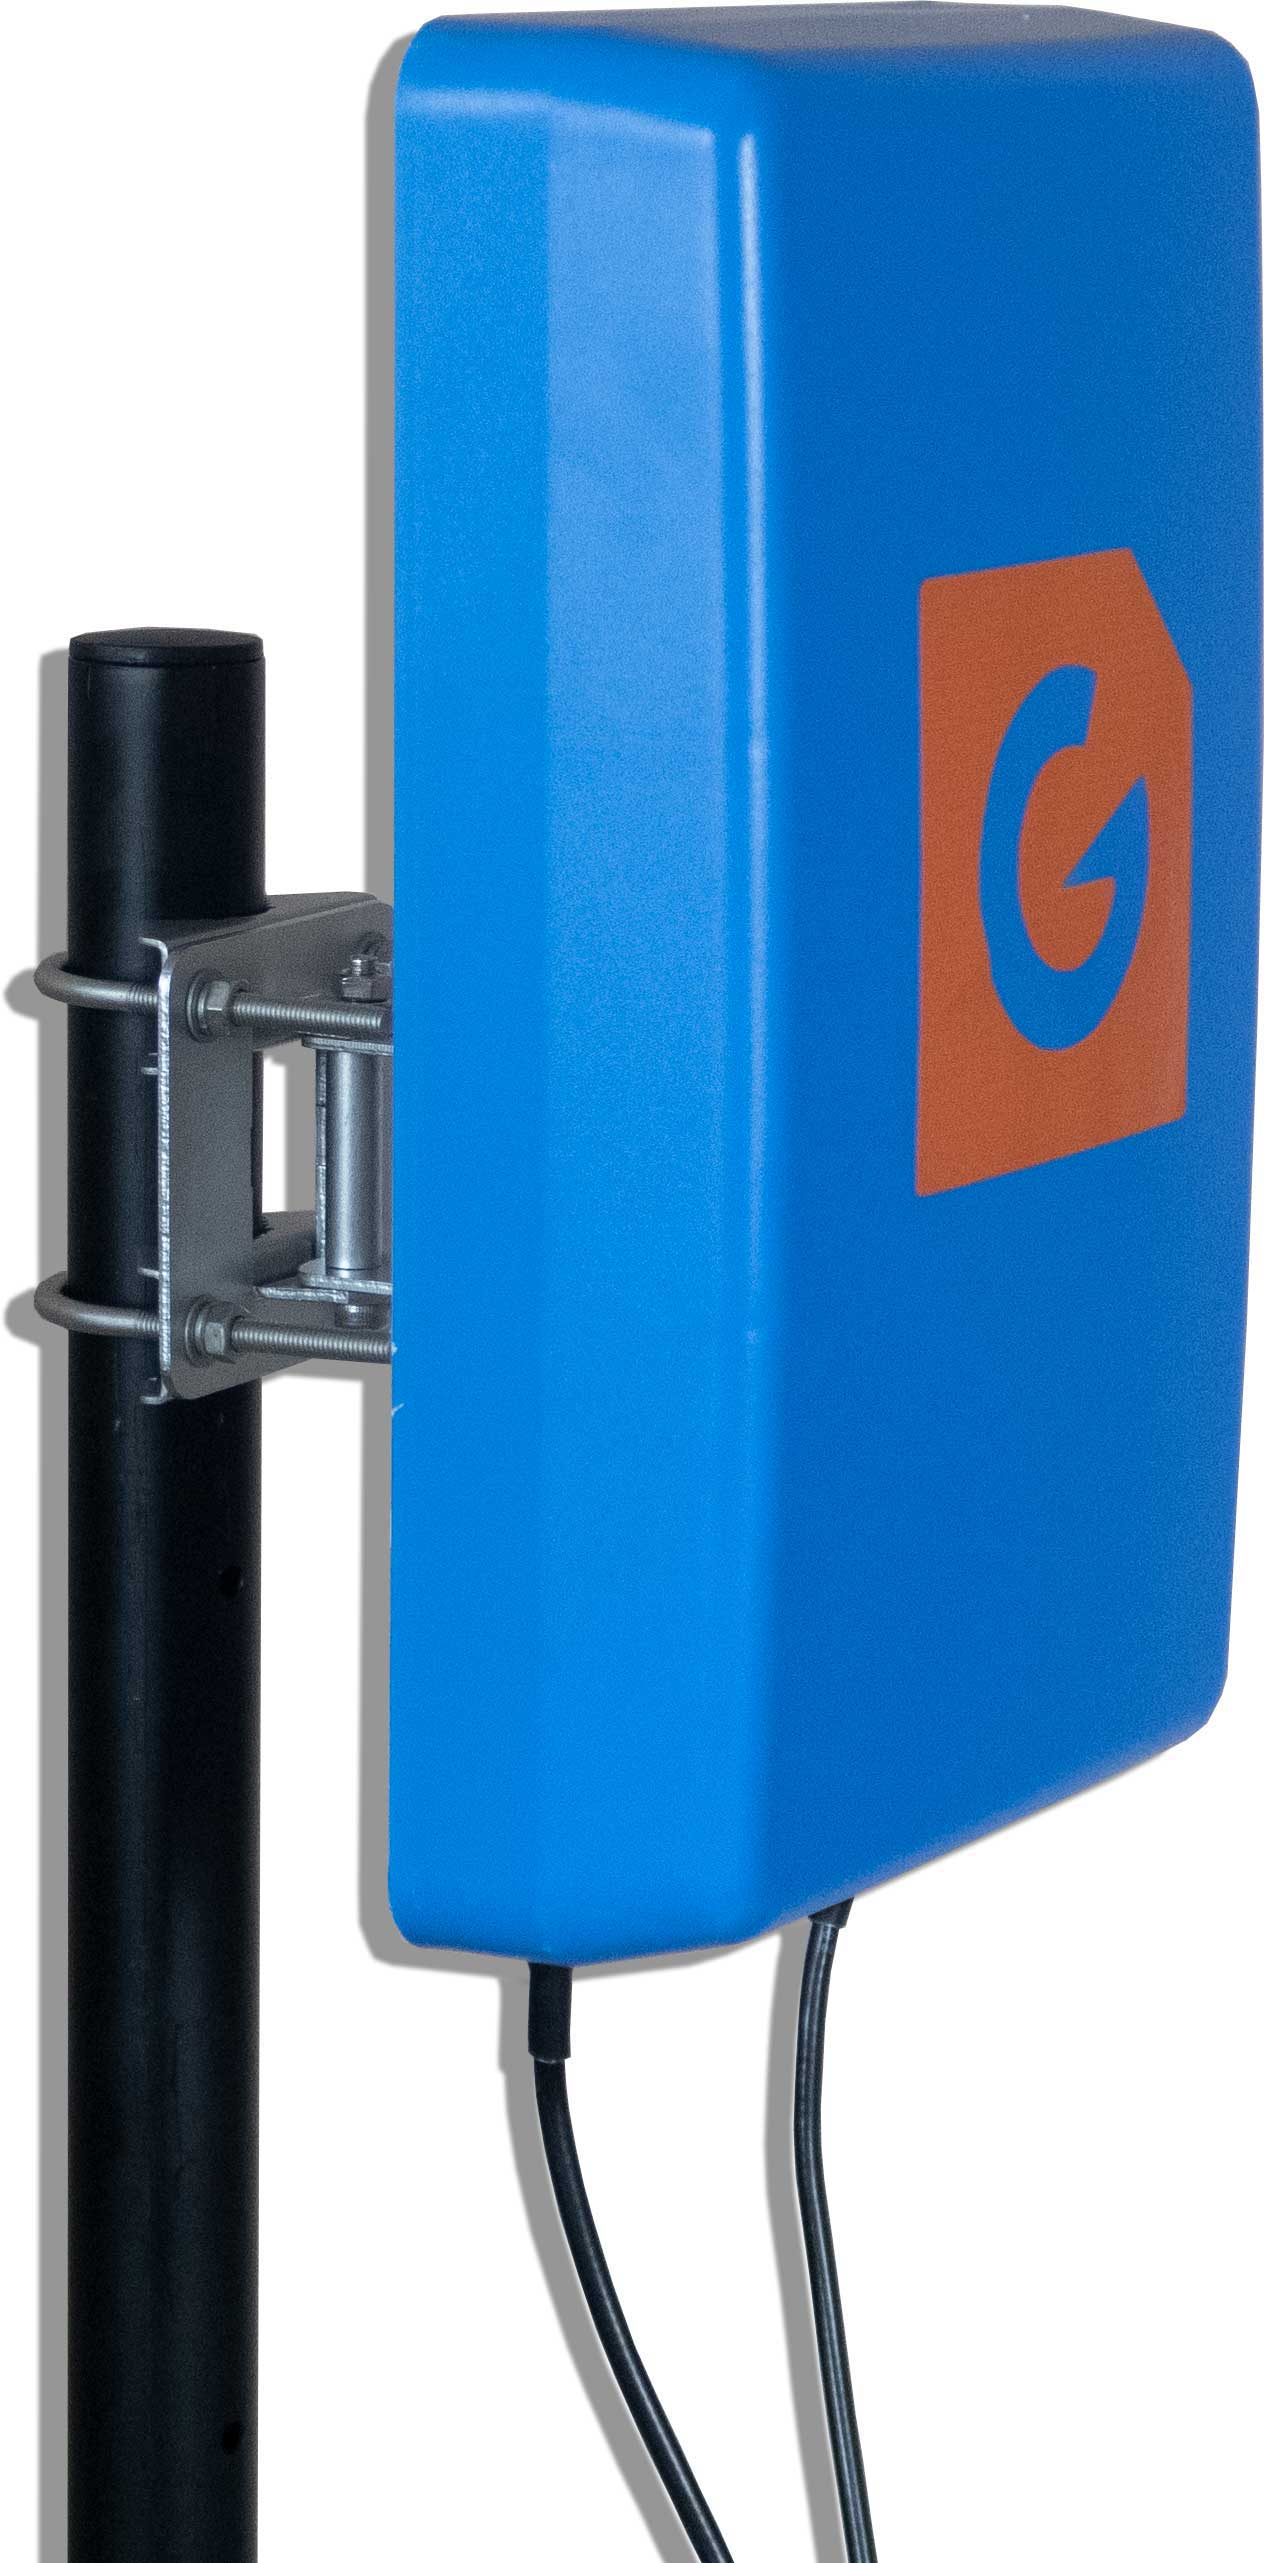 The G Spotter True Blue LTE MiMO antenna... Click Here for more details